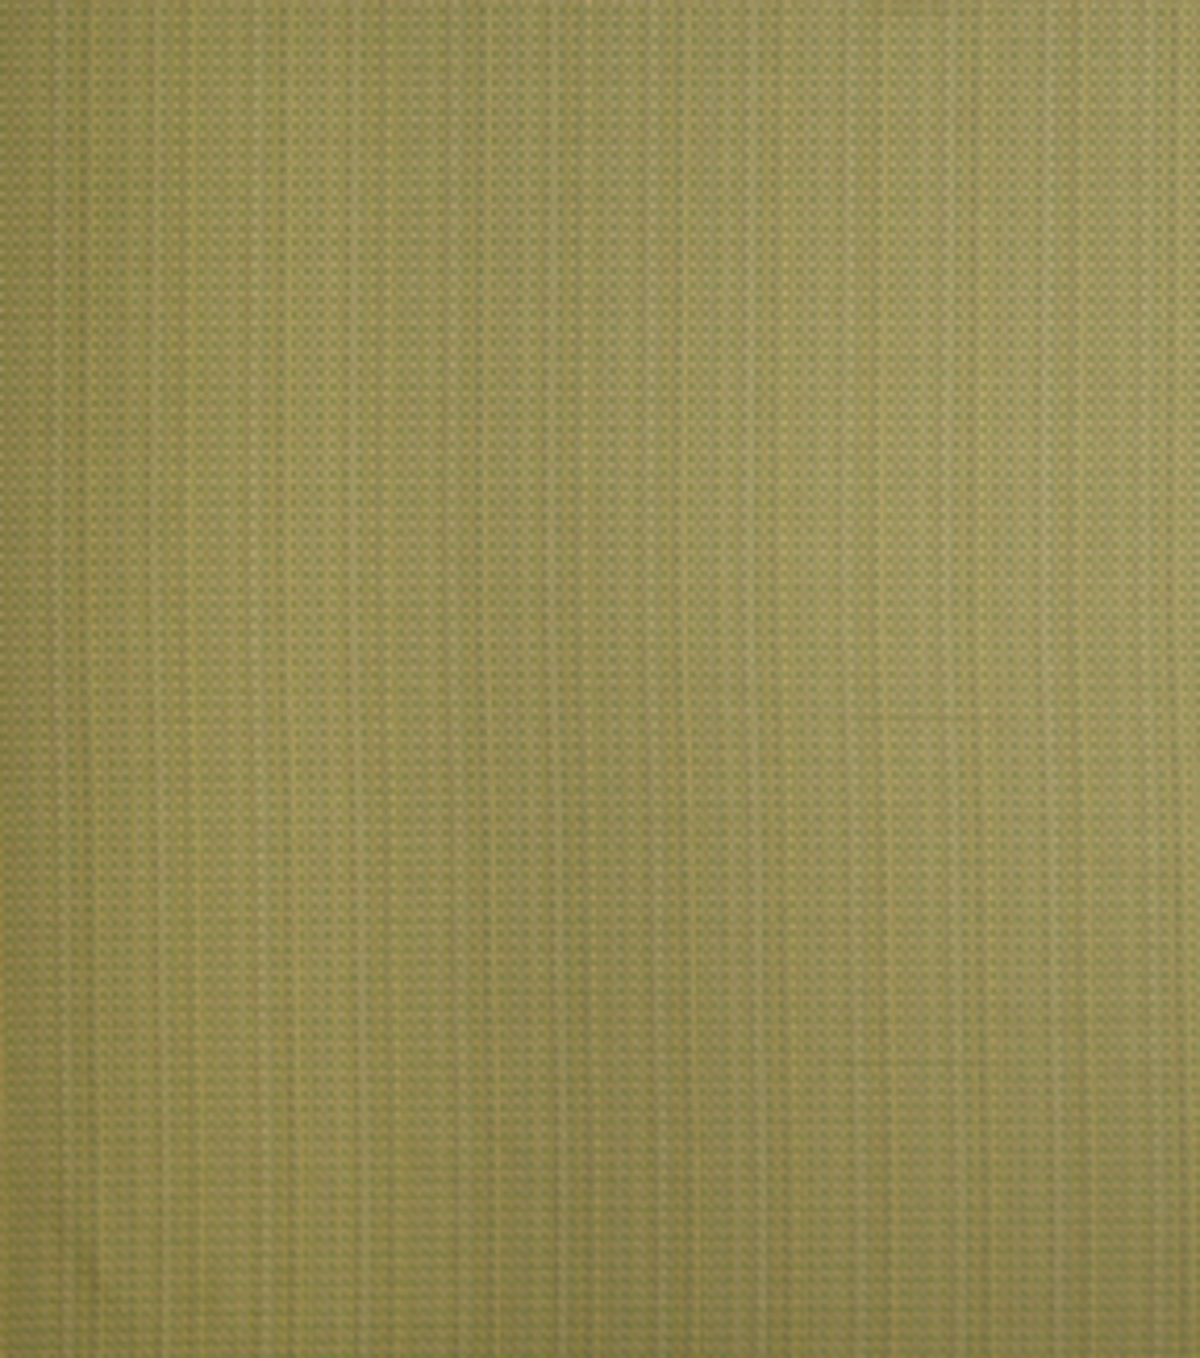 Home Decor 8\u0022x8\u0022 Fabric Swatch-Eaton Square City Leaf